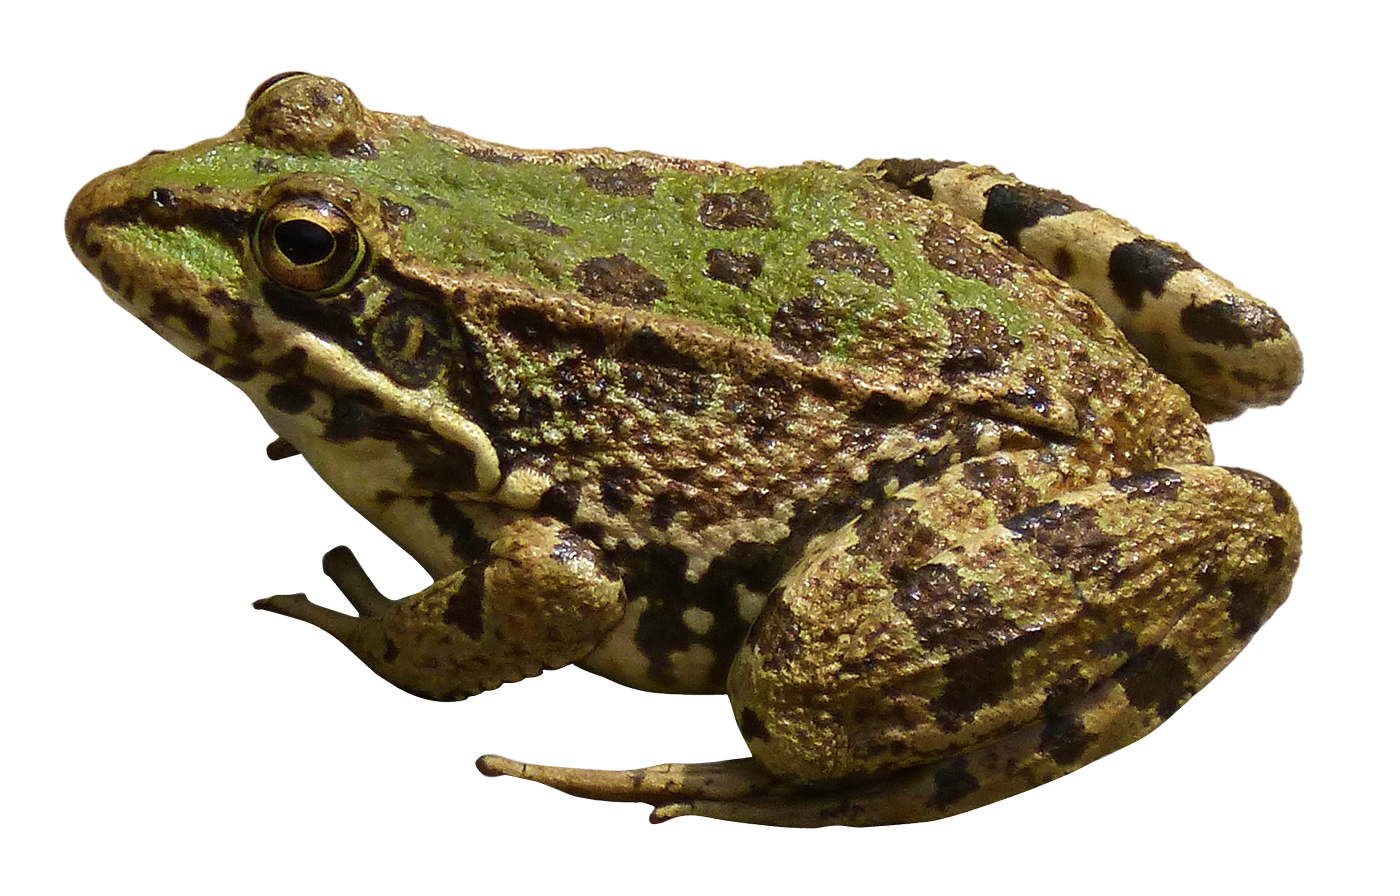 Frogs Png - Frog Png & Free Frog.png Transparent Images #2705 - PNGio